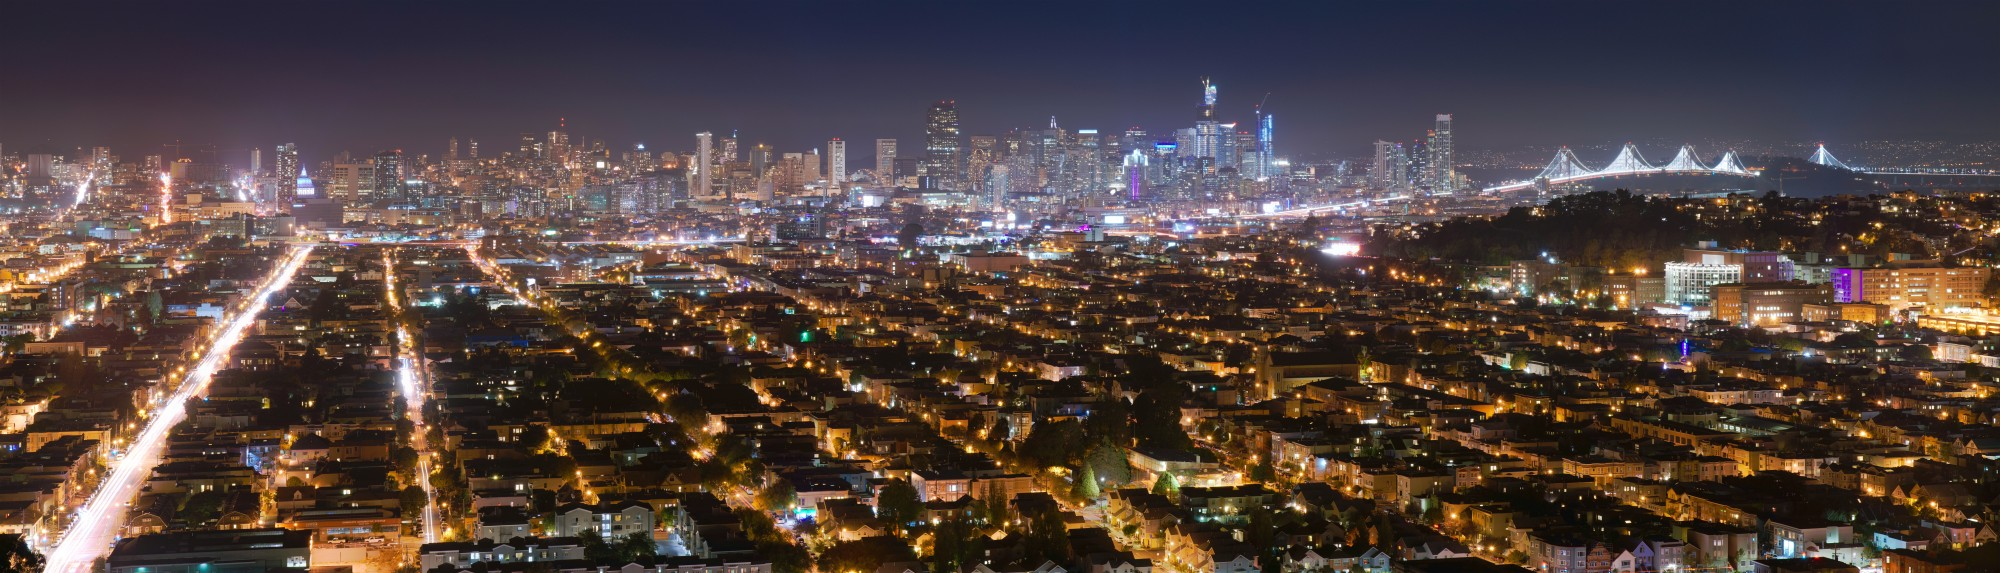 View of San Francisco at night from Bernal Heights 2016 01